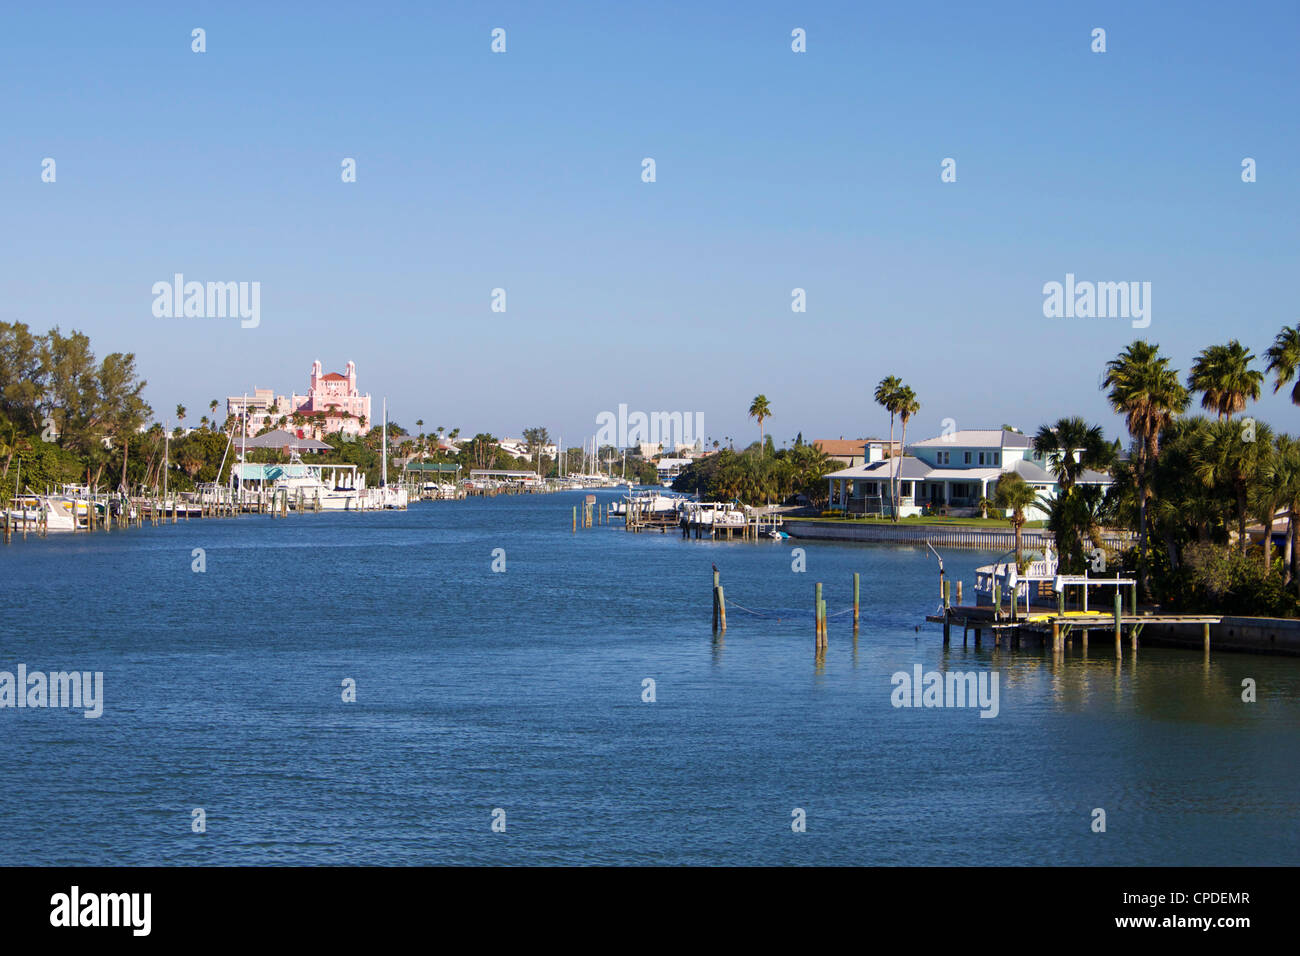 Pass A Grille, St. Petersburg Beach, Gulf Coast, Florida, United States of America, North America - Stock Image